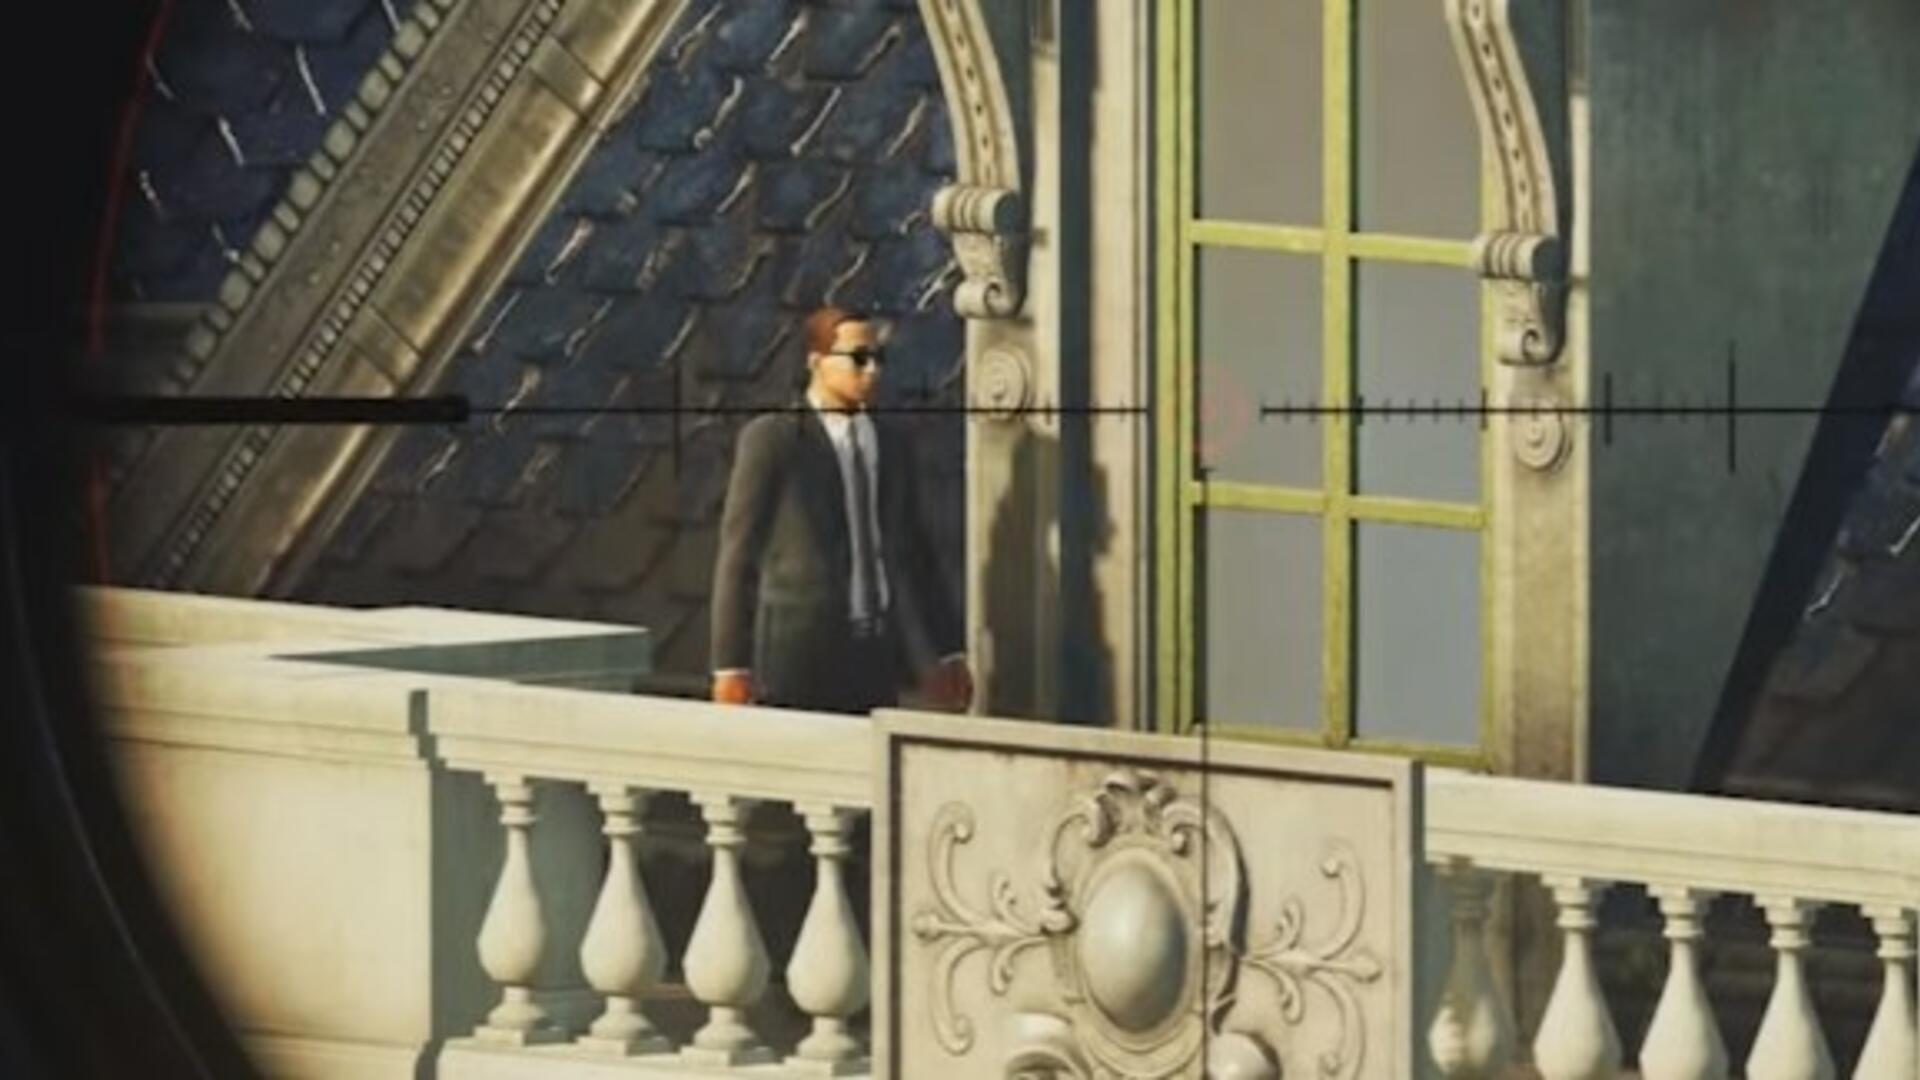 There's a New Hitman: Sniper Assassin Competition - Win Your Face in Hitman 2